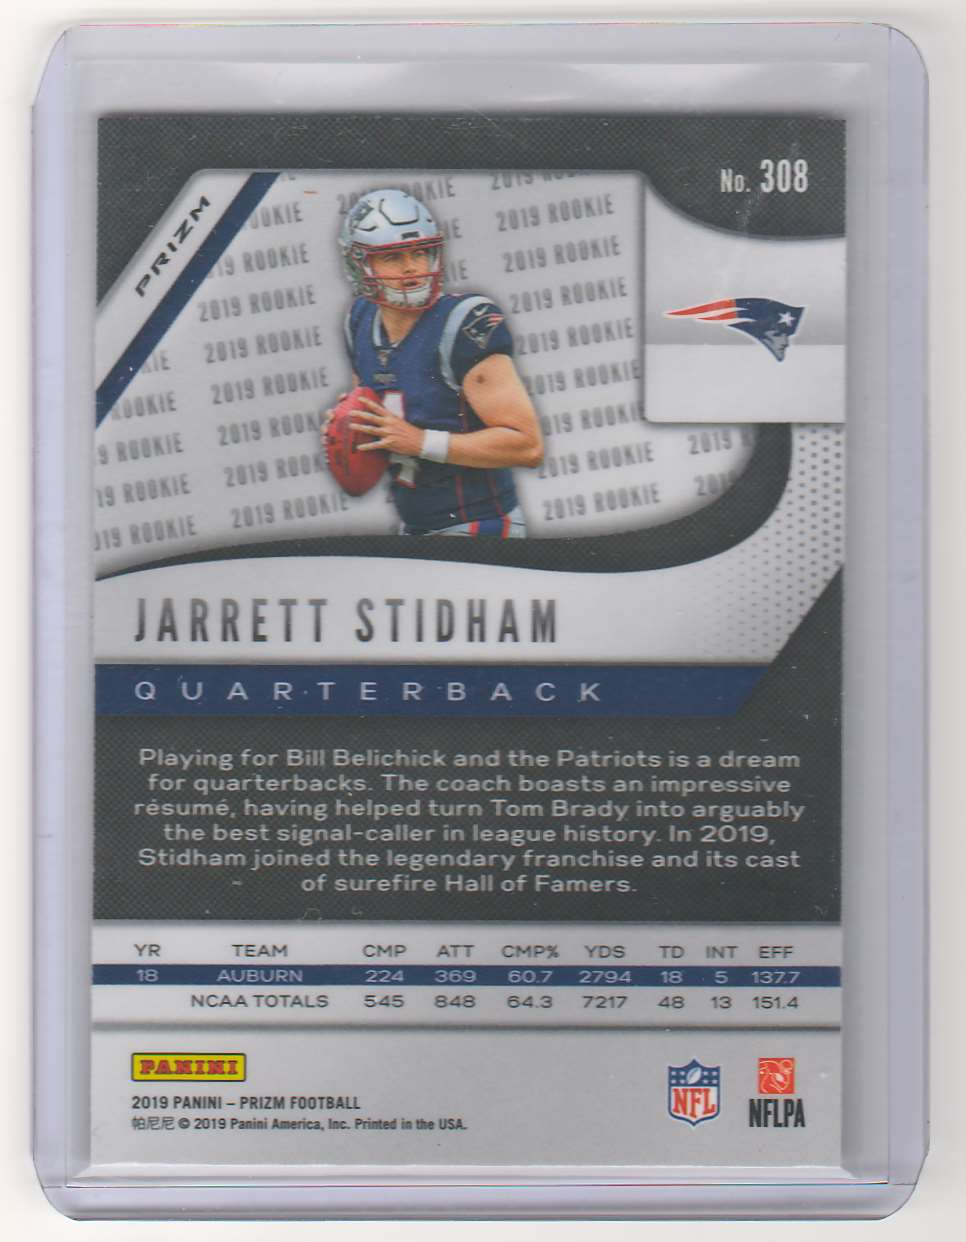 2019 Panini Prizm Jarrett Stidham Red Cracked Ice Prizm RC #308 card back image